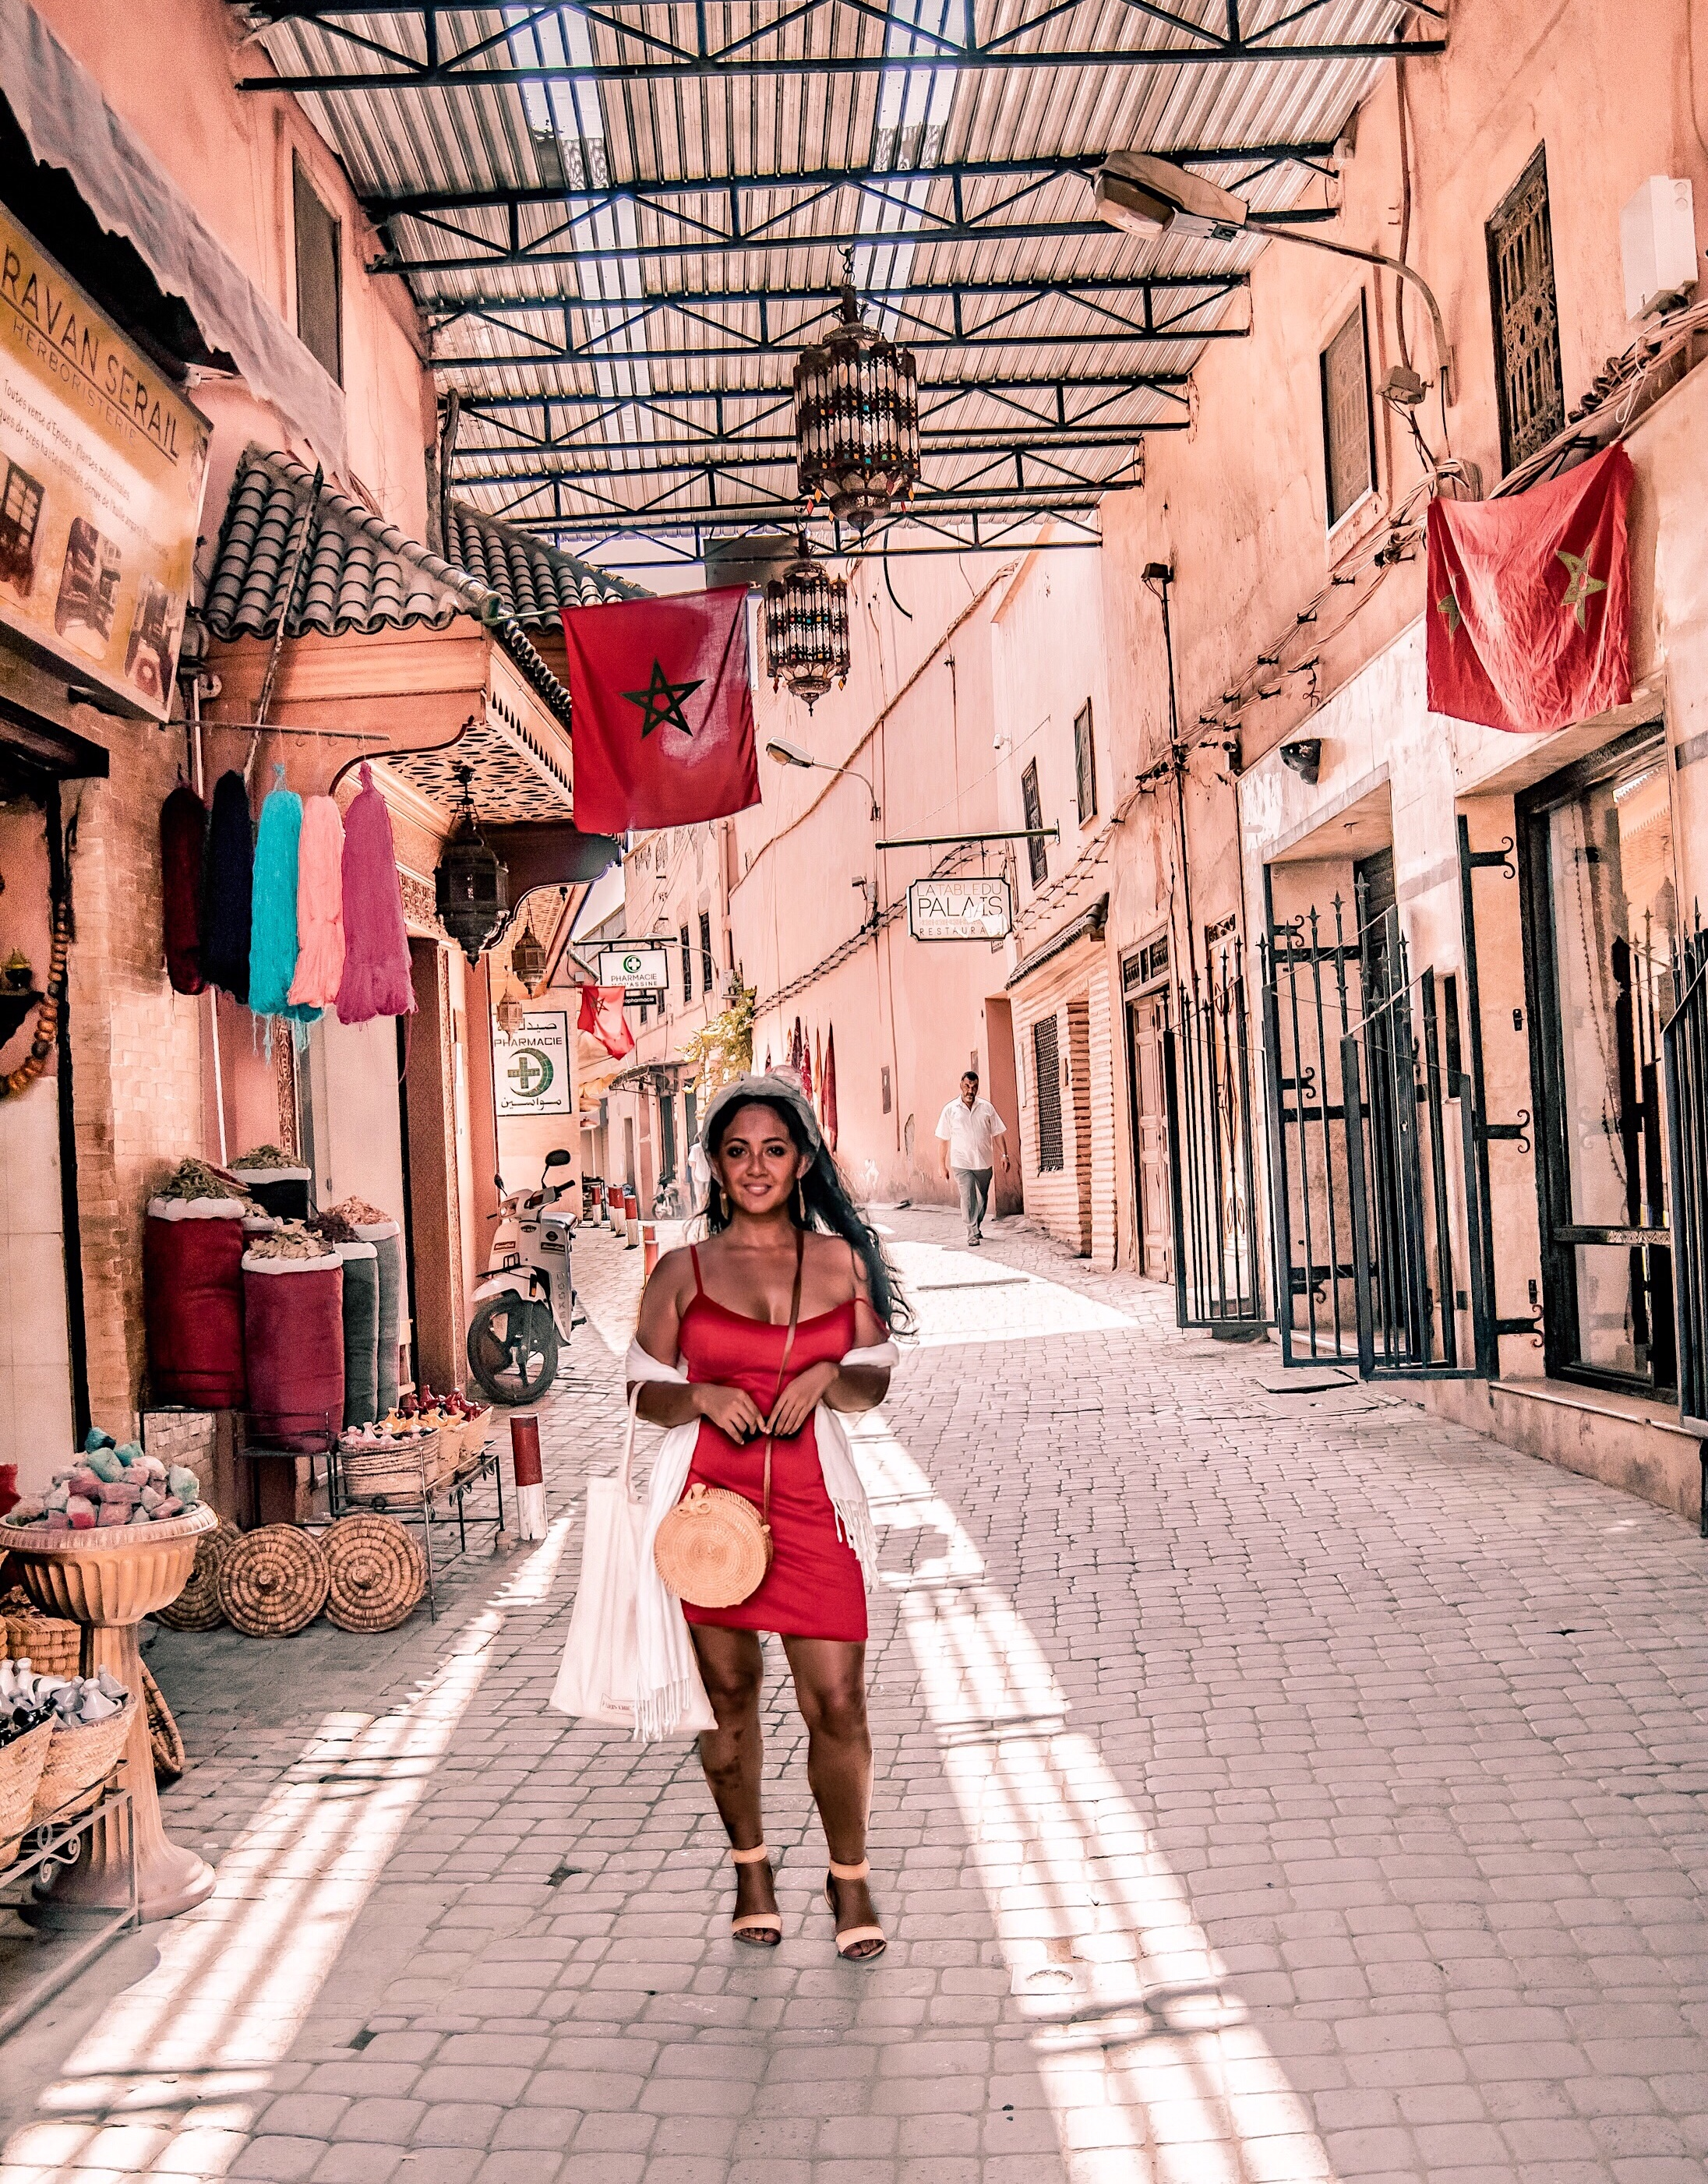 Marjolyn Lago Marj What-Color-Shoes-To-Wear-With-A-Red-Dress-How-To-Wear-A-Summer-Red-Dress-What-To-Wear-In-Morocco-Marrakech-Paris-Chic-Style-4